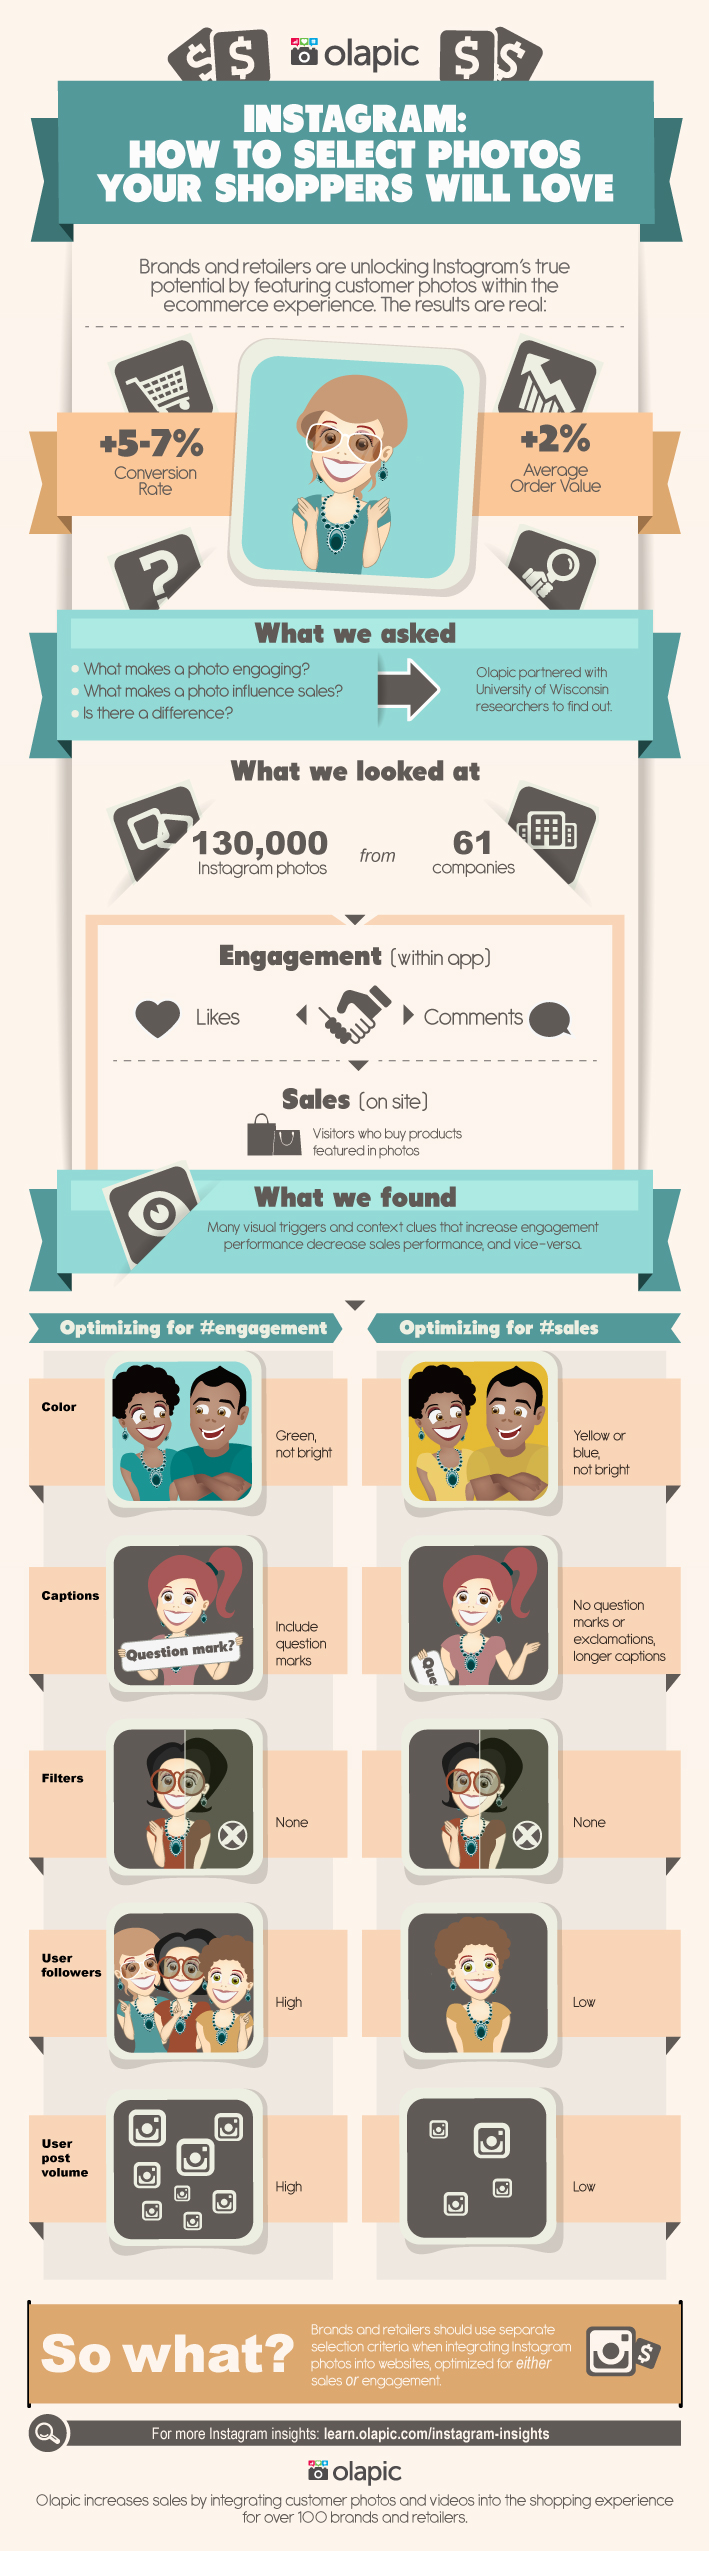 Olapic_Infographic_-_How_to_Select_Photos_Your_Shoppers_Will_Love-11